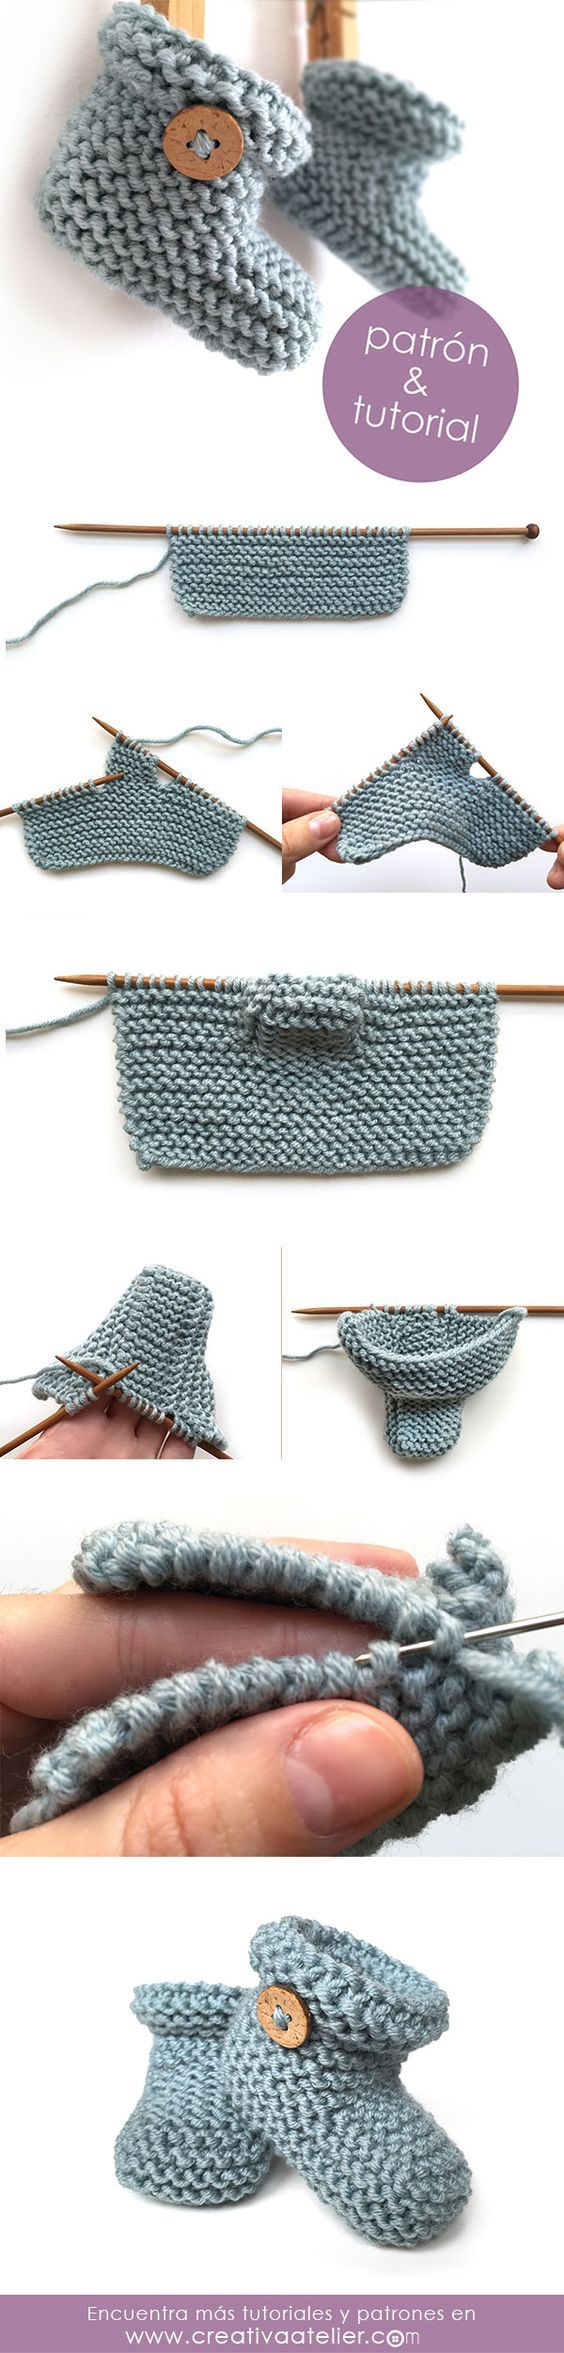 40 + Knit Baby Booties with Pattern | Stricken babyschuhe ...